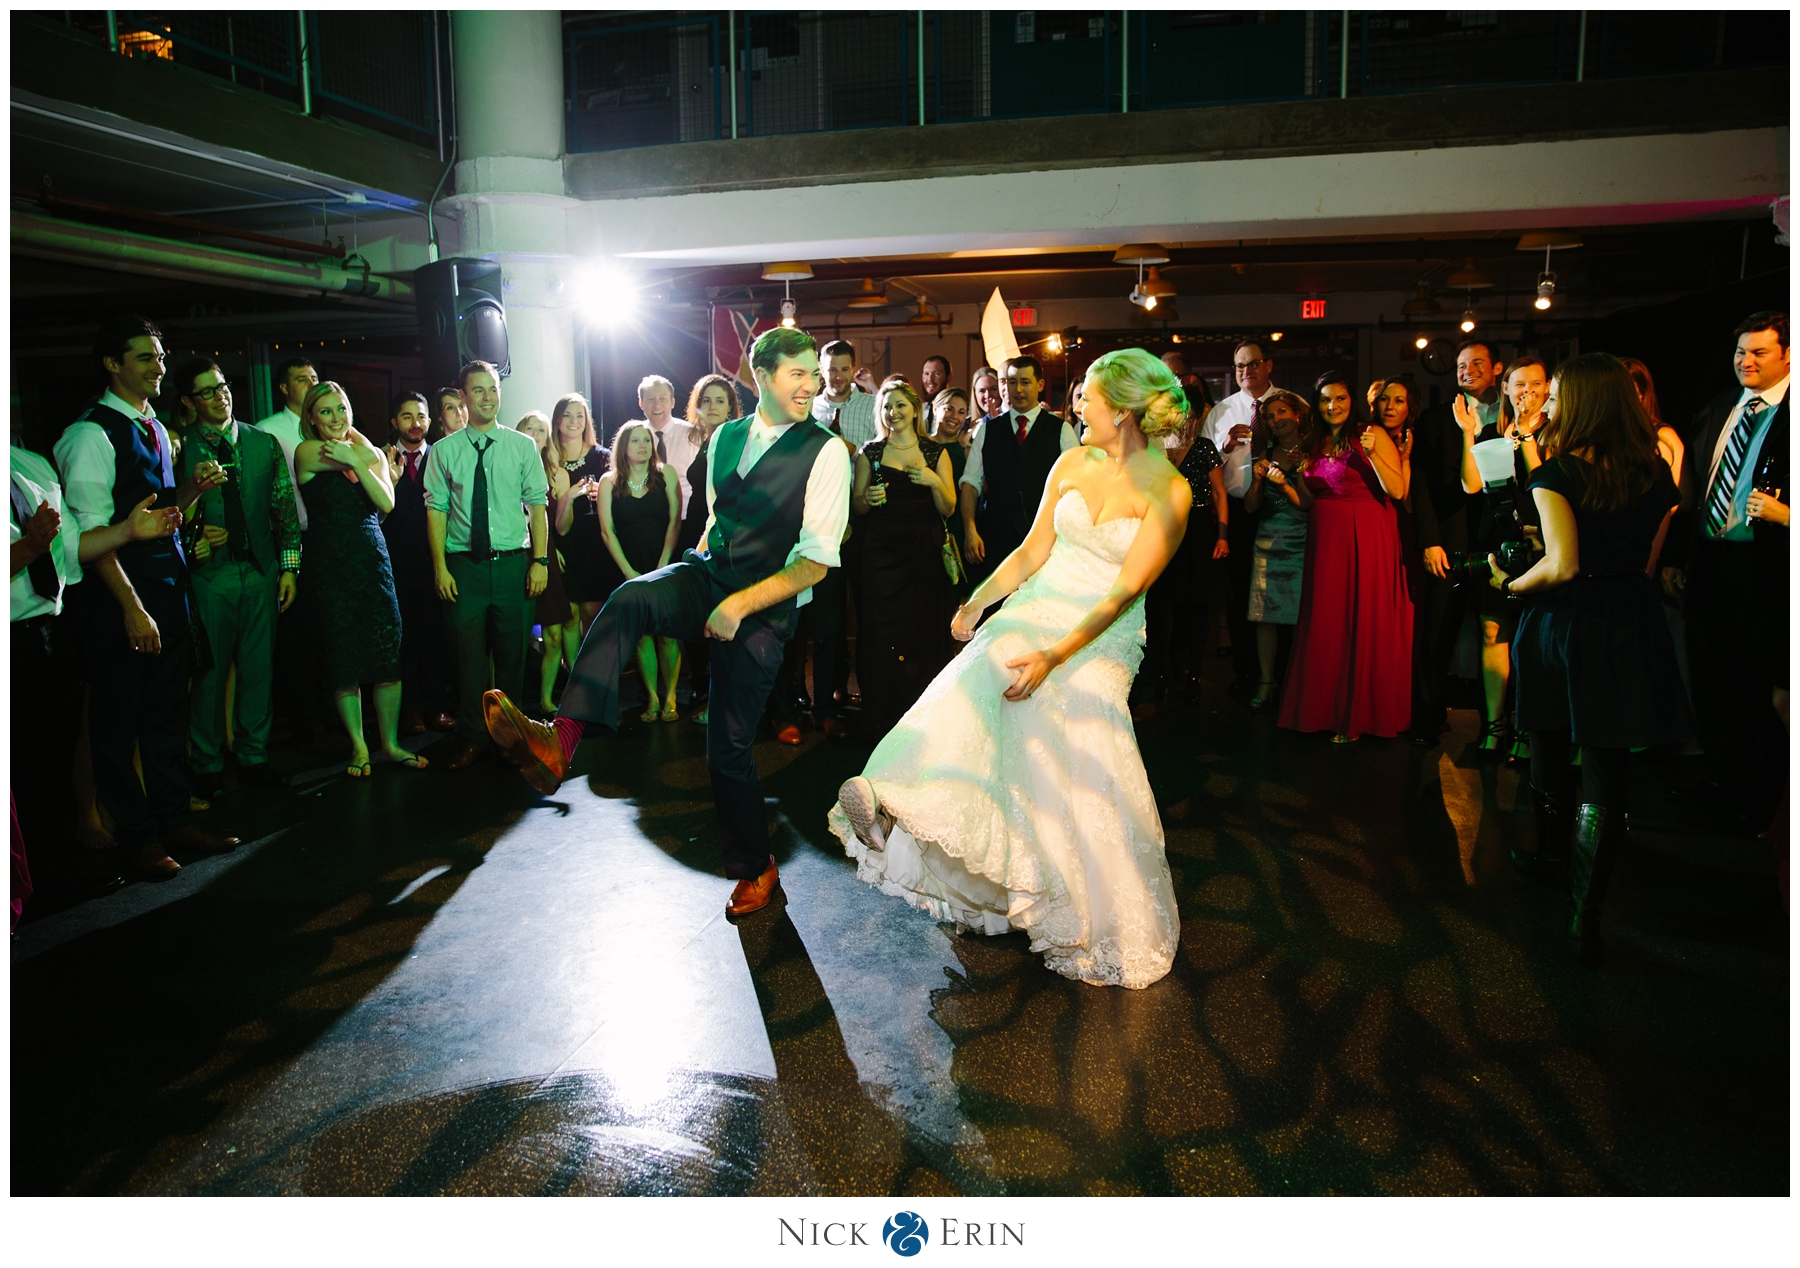 Donner_Photography_Torpedo Factory Wedding_Courtney and Scott_0070